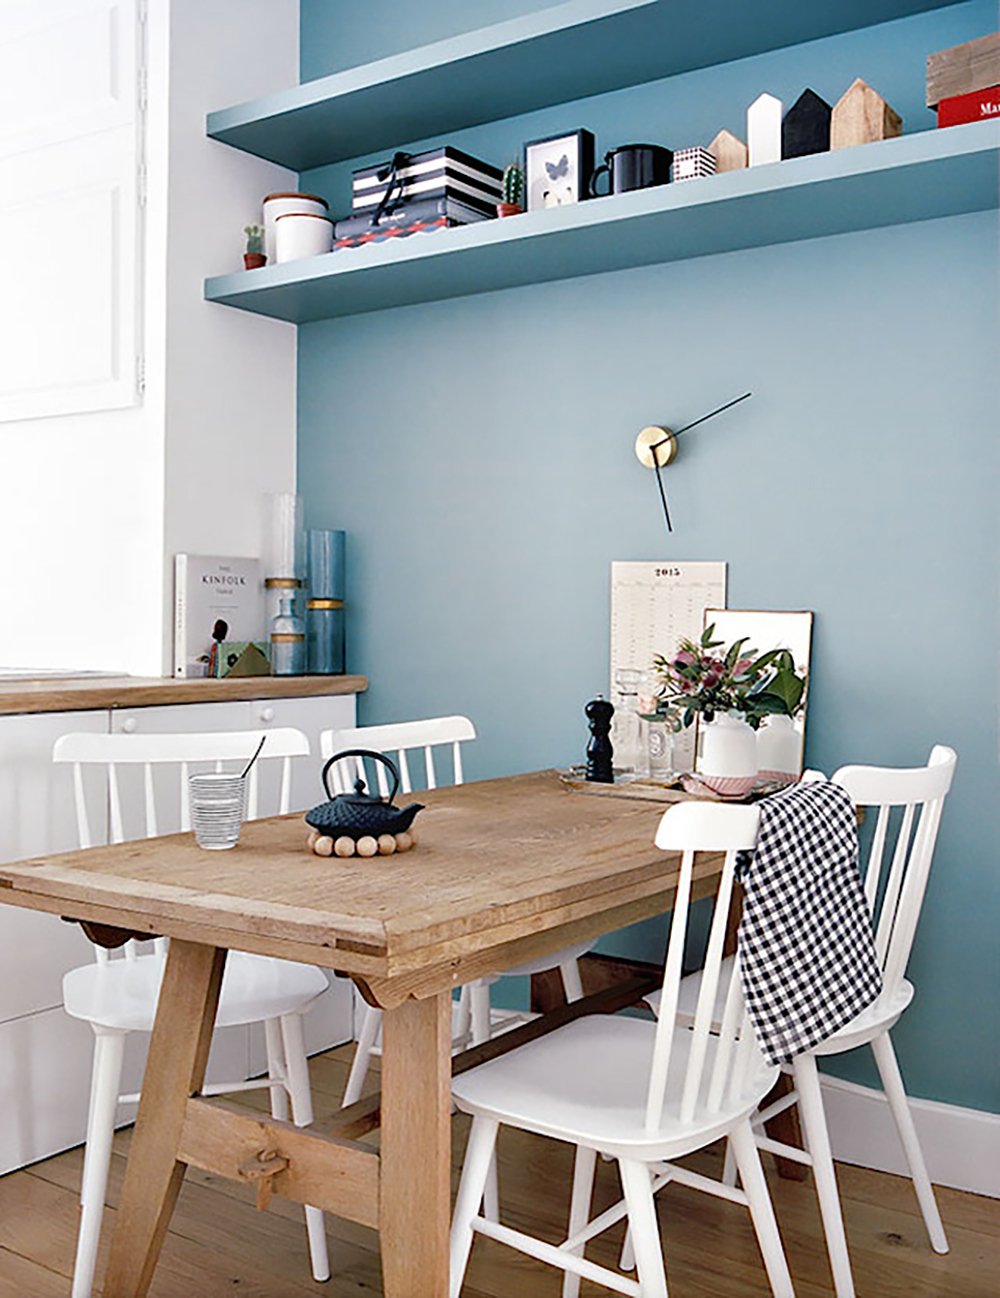 Painting one wall blue in your dining room can make a positive effect - 35 ideas for blue wall colour in home decoration | Aliz's Wonderland